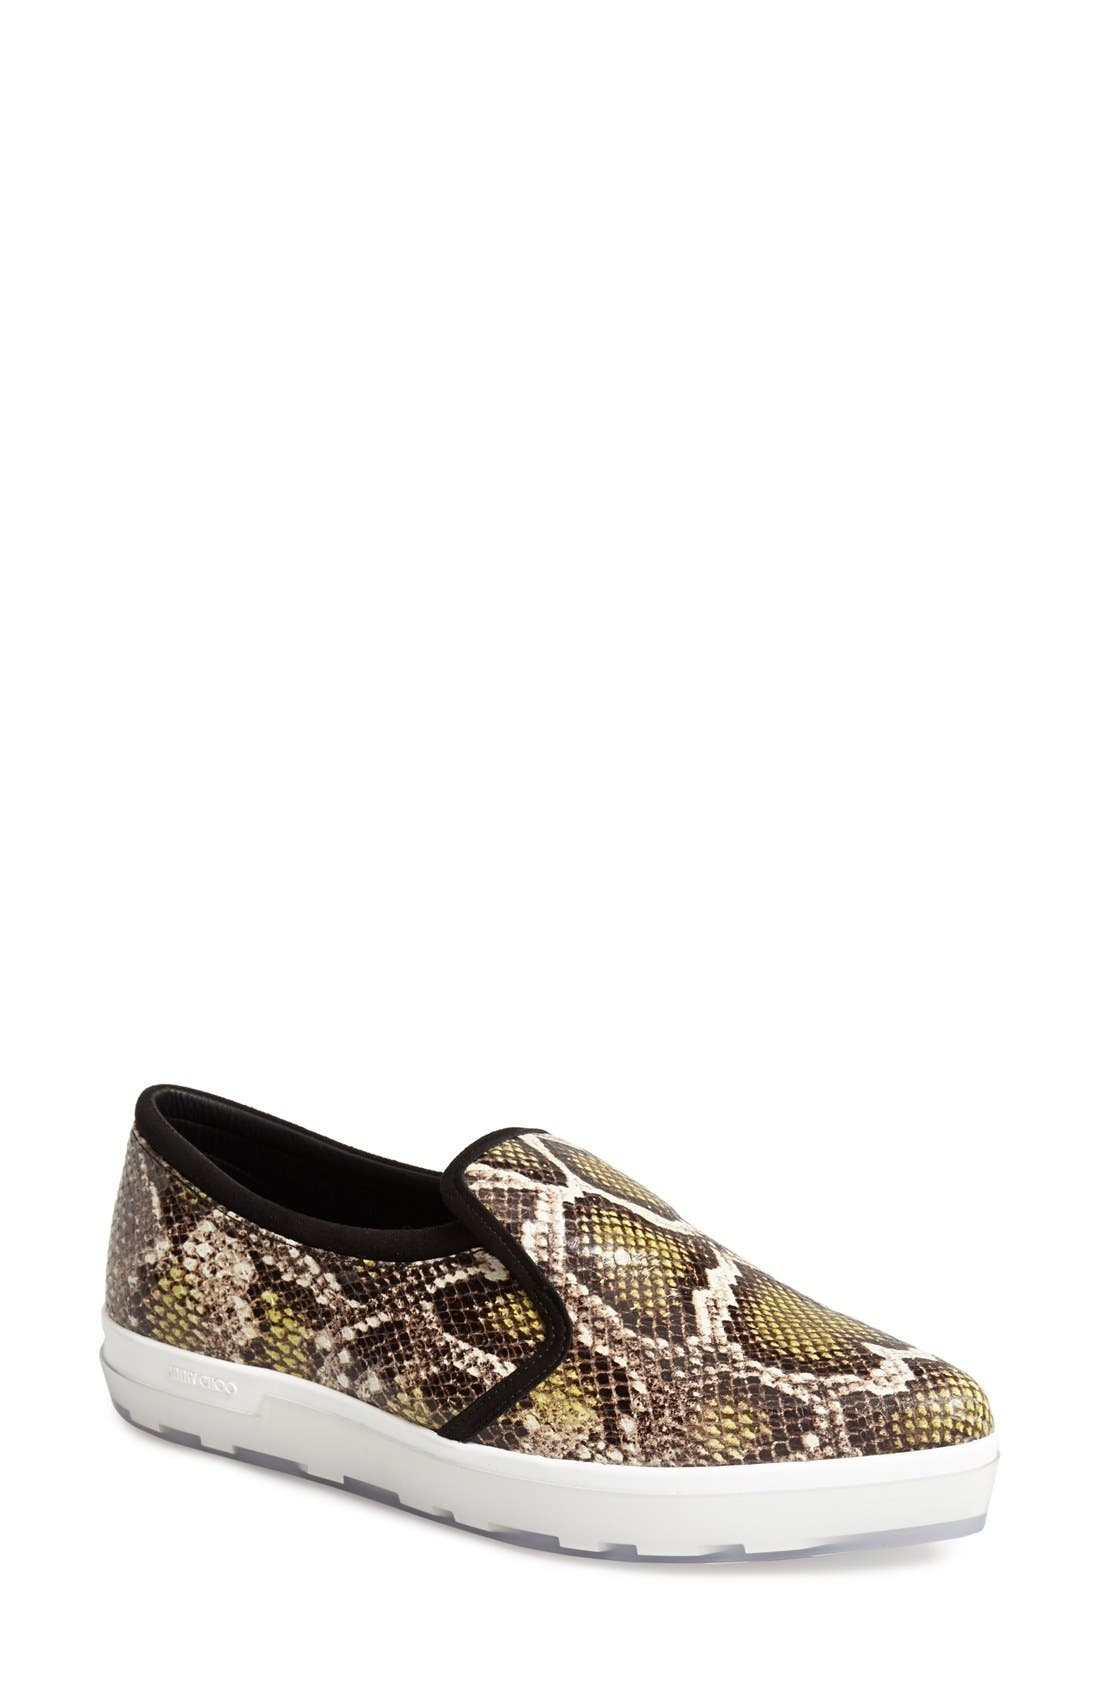 Main Image - Jimmy Choo 'Brooklyn' Slip-On Sneaker (Women)